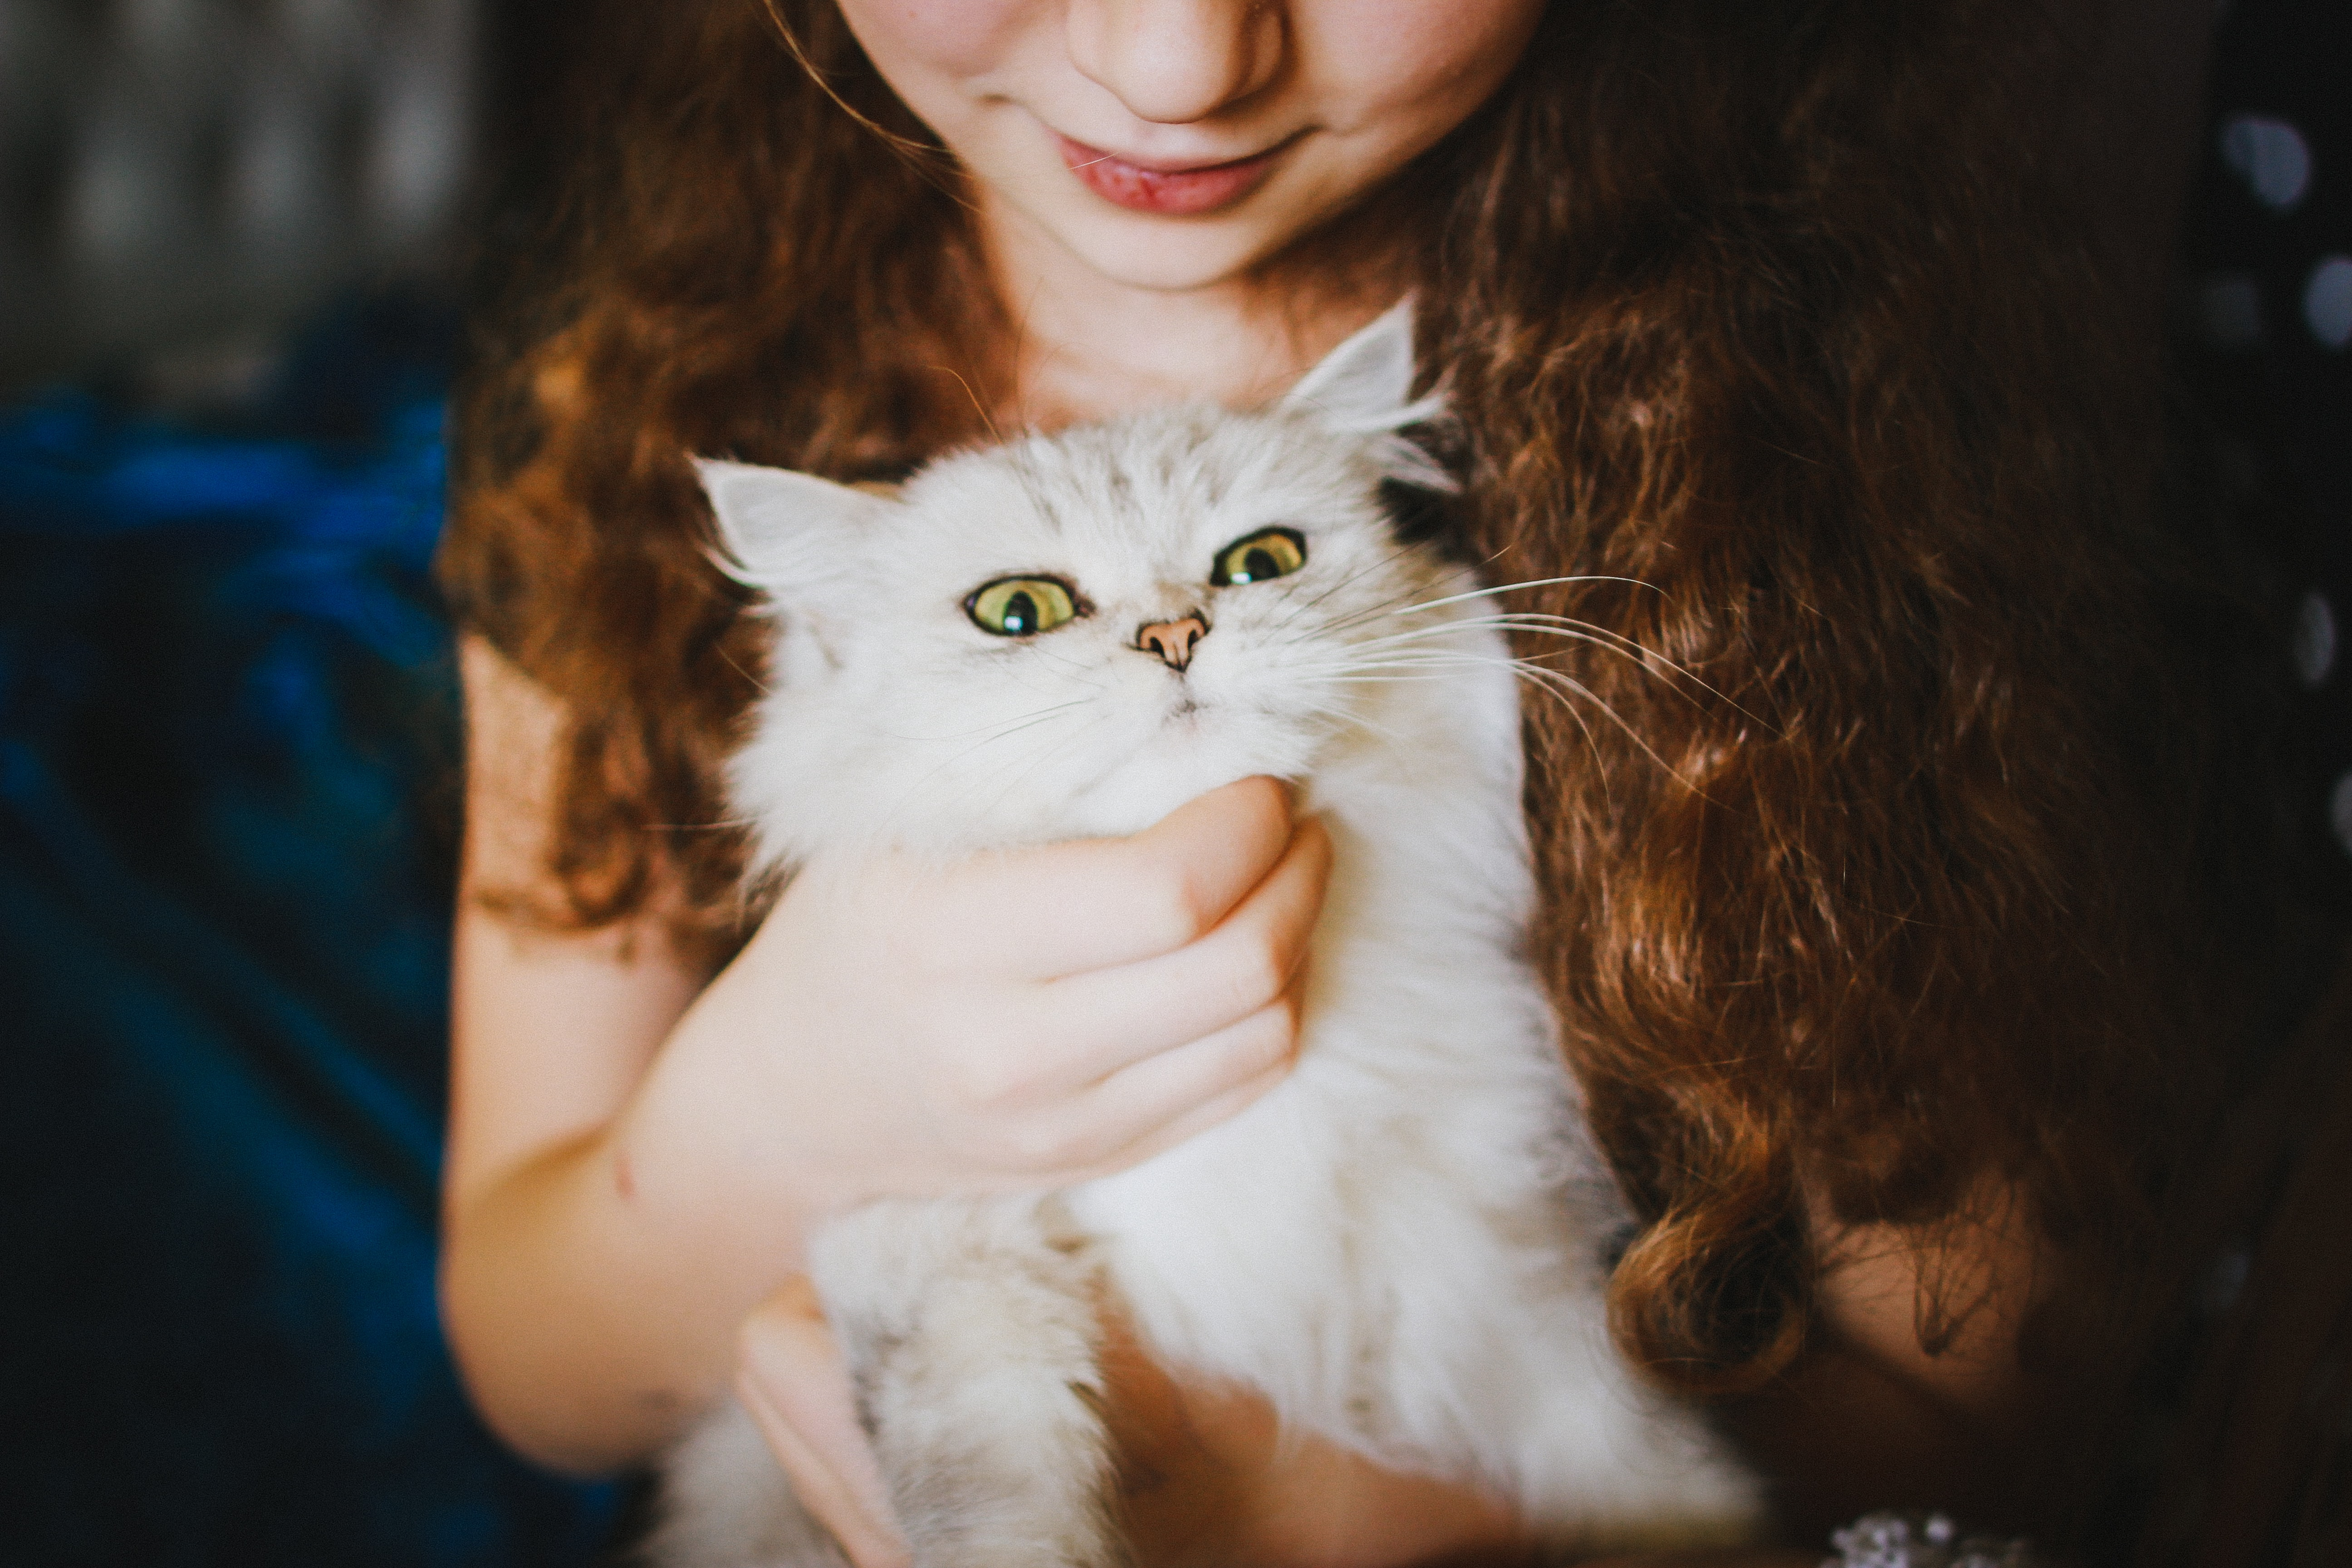 Young girl holds a fancy cat close to her